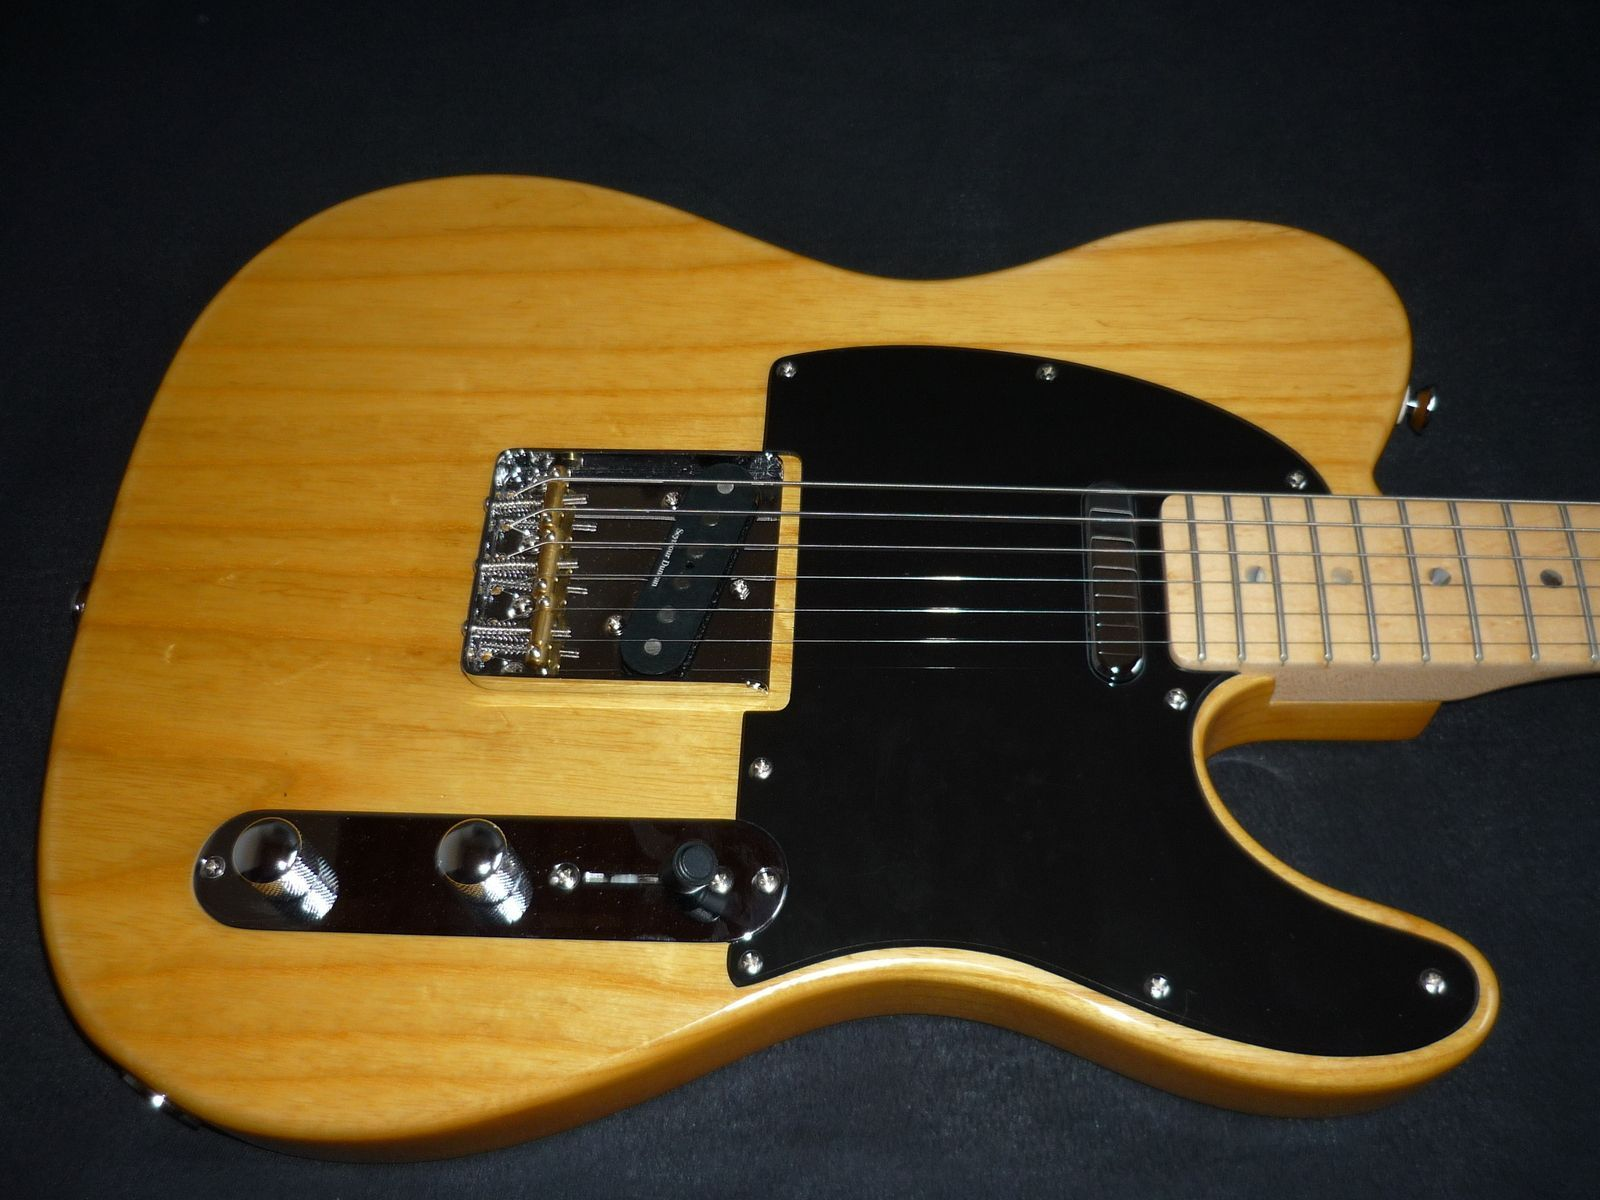 fender special edition lite ash telecaster image 199906 audiofanzine. Black Bedroom Furniture Sets. Home Design Ideas